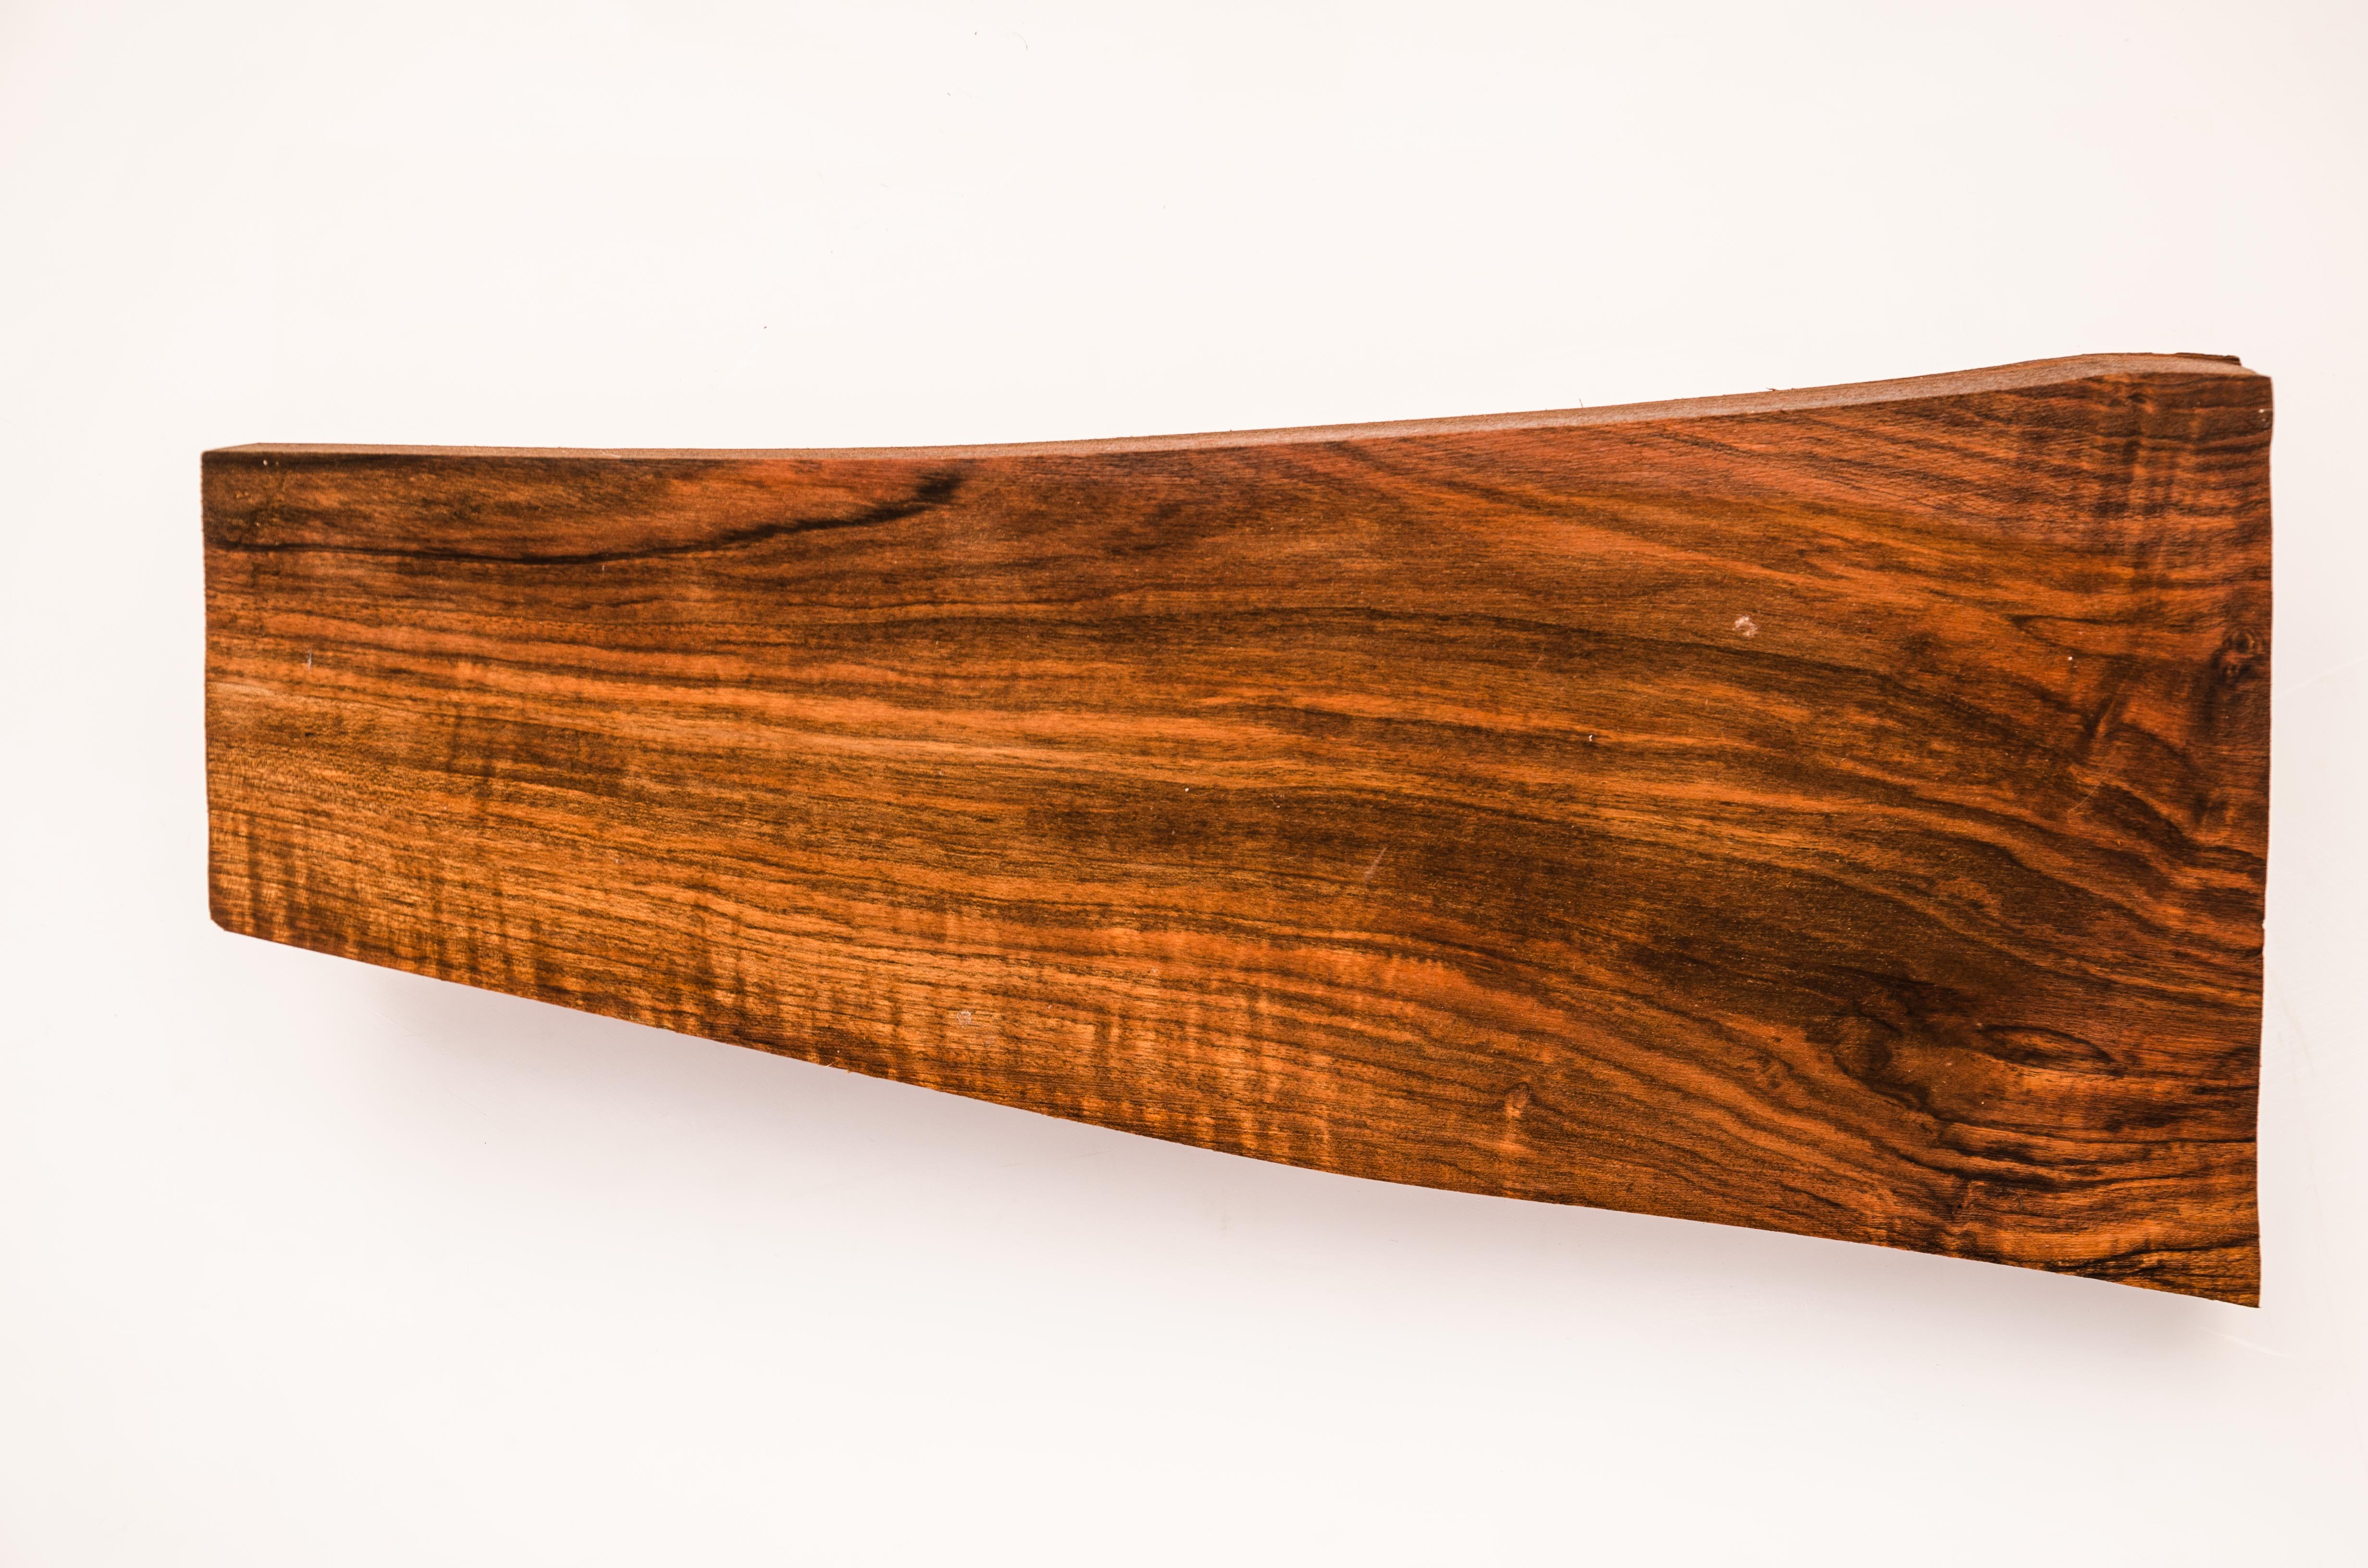 walnut_stock_blanks_for_guns_and_rifles-0550